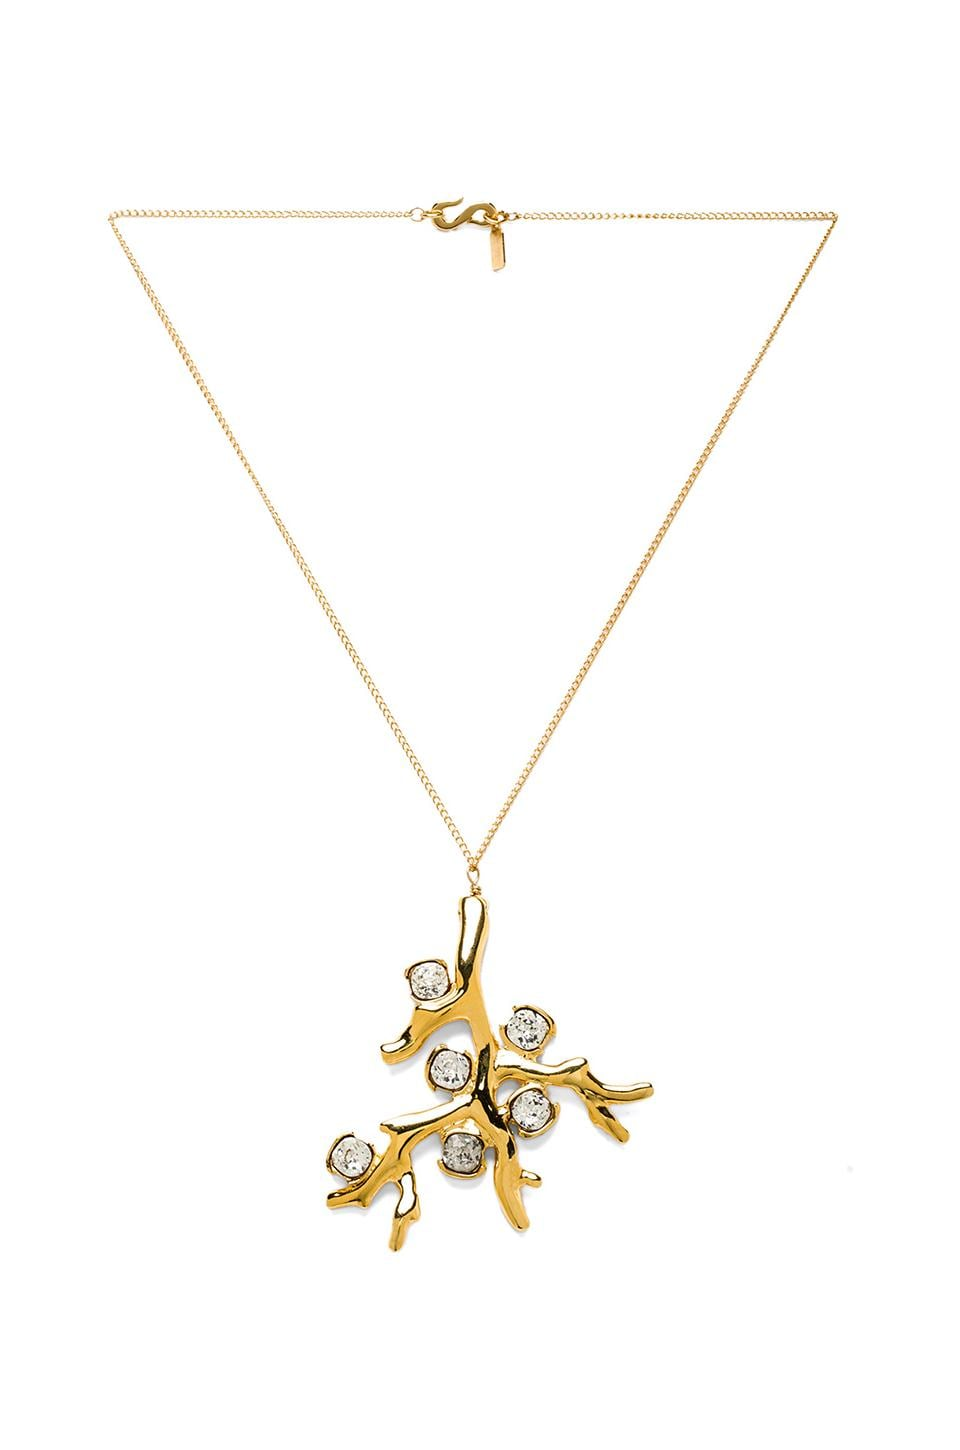 Kenneth Jay Lane Branch Pendant Necklace in Gold